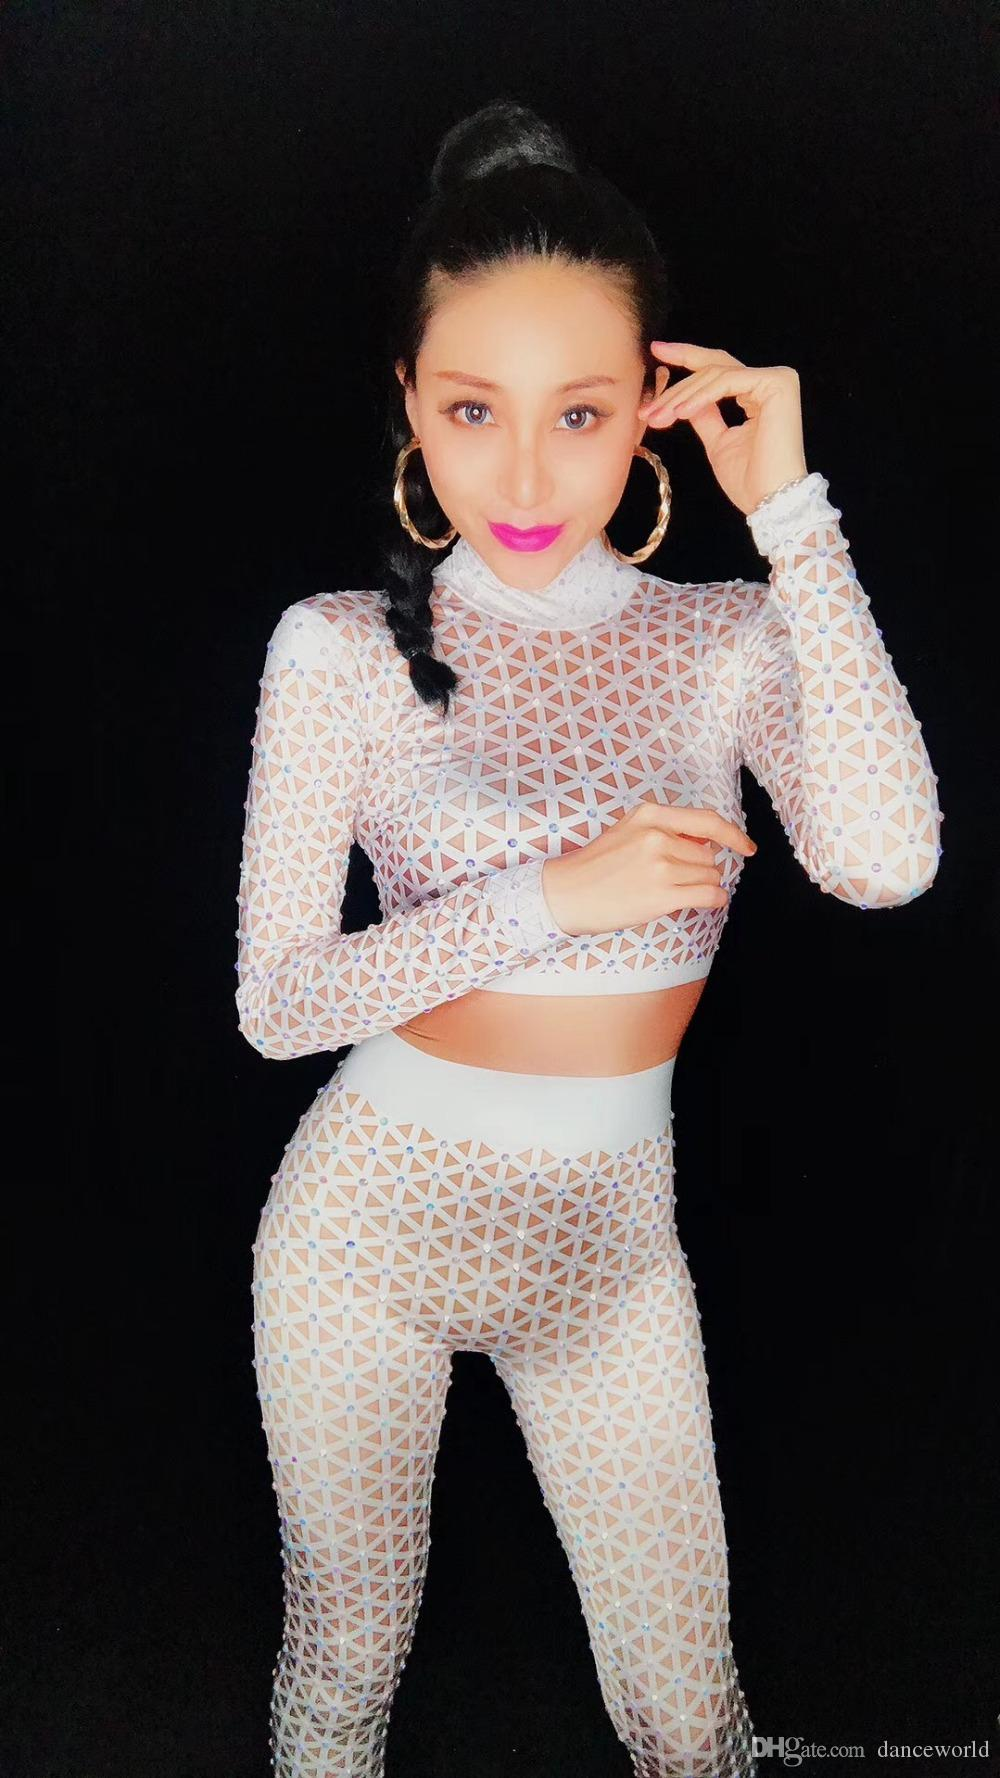 Ds Dj Dress Sexy White Nude Printed Jumpsuit Singer Dancer Sexy Leggings Costume Big Stretch Bodysuit Nightclub Outfit Party Wear